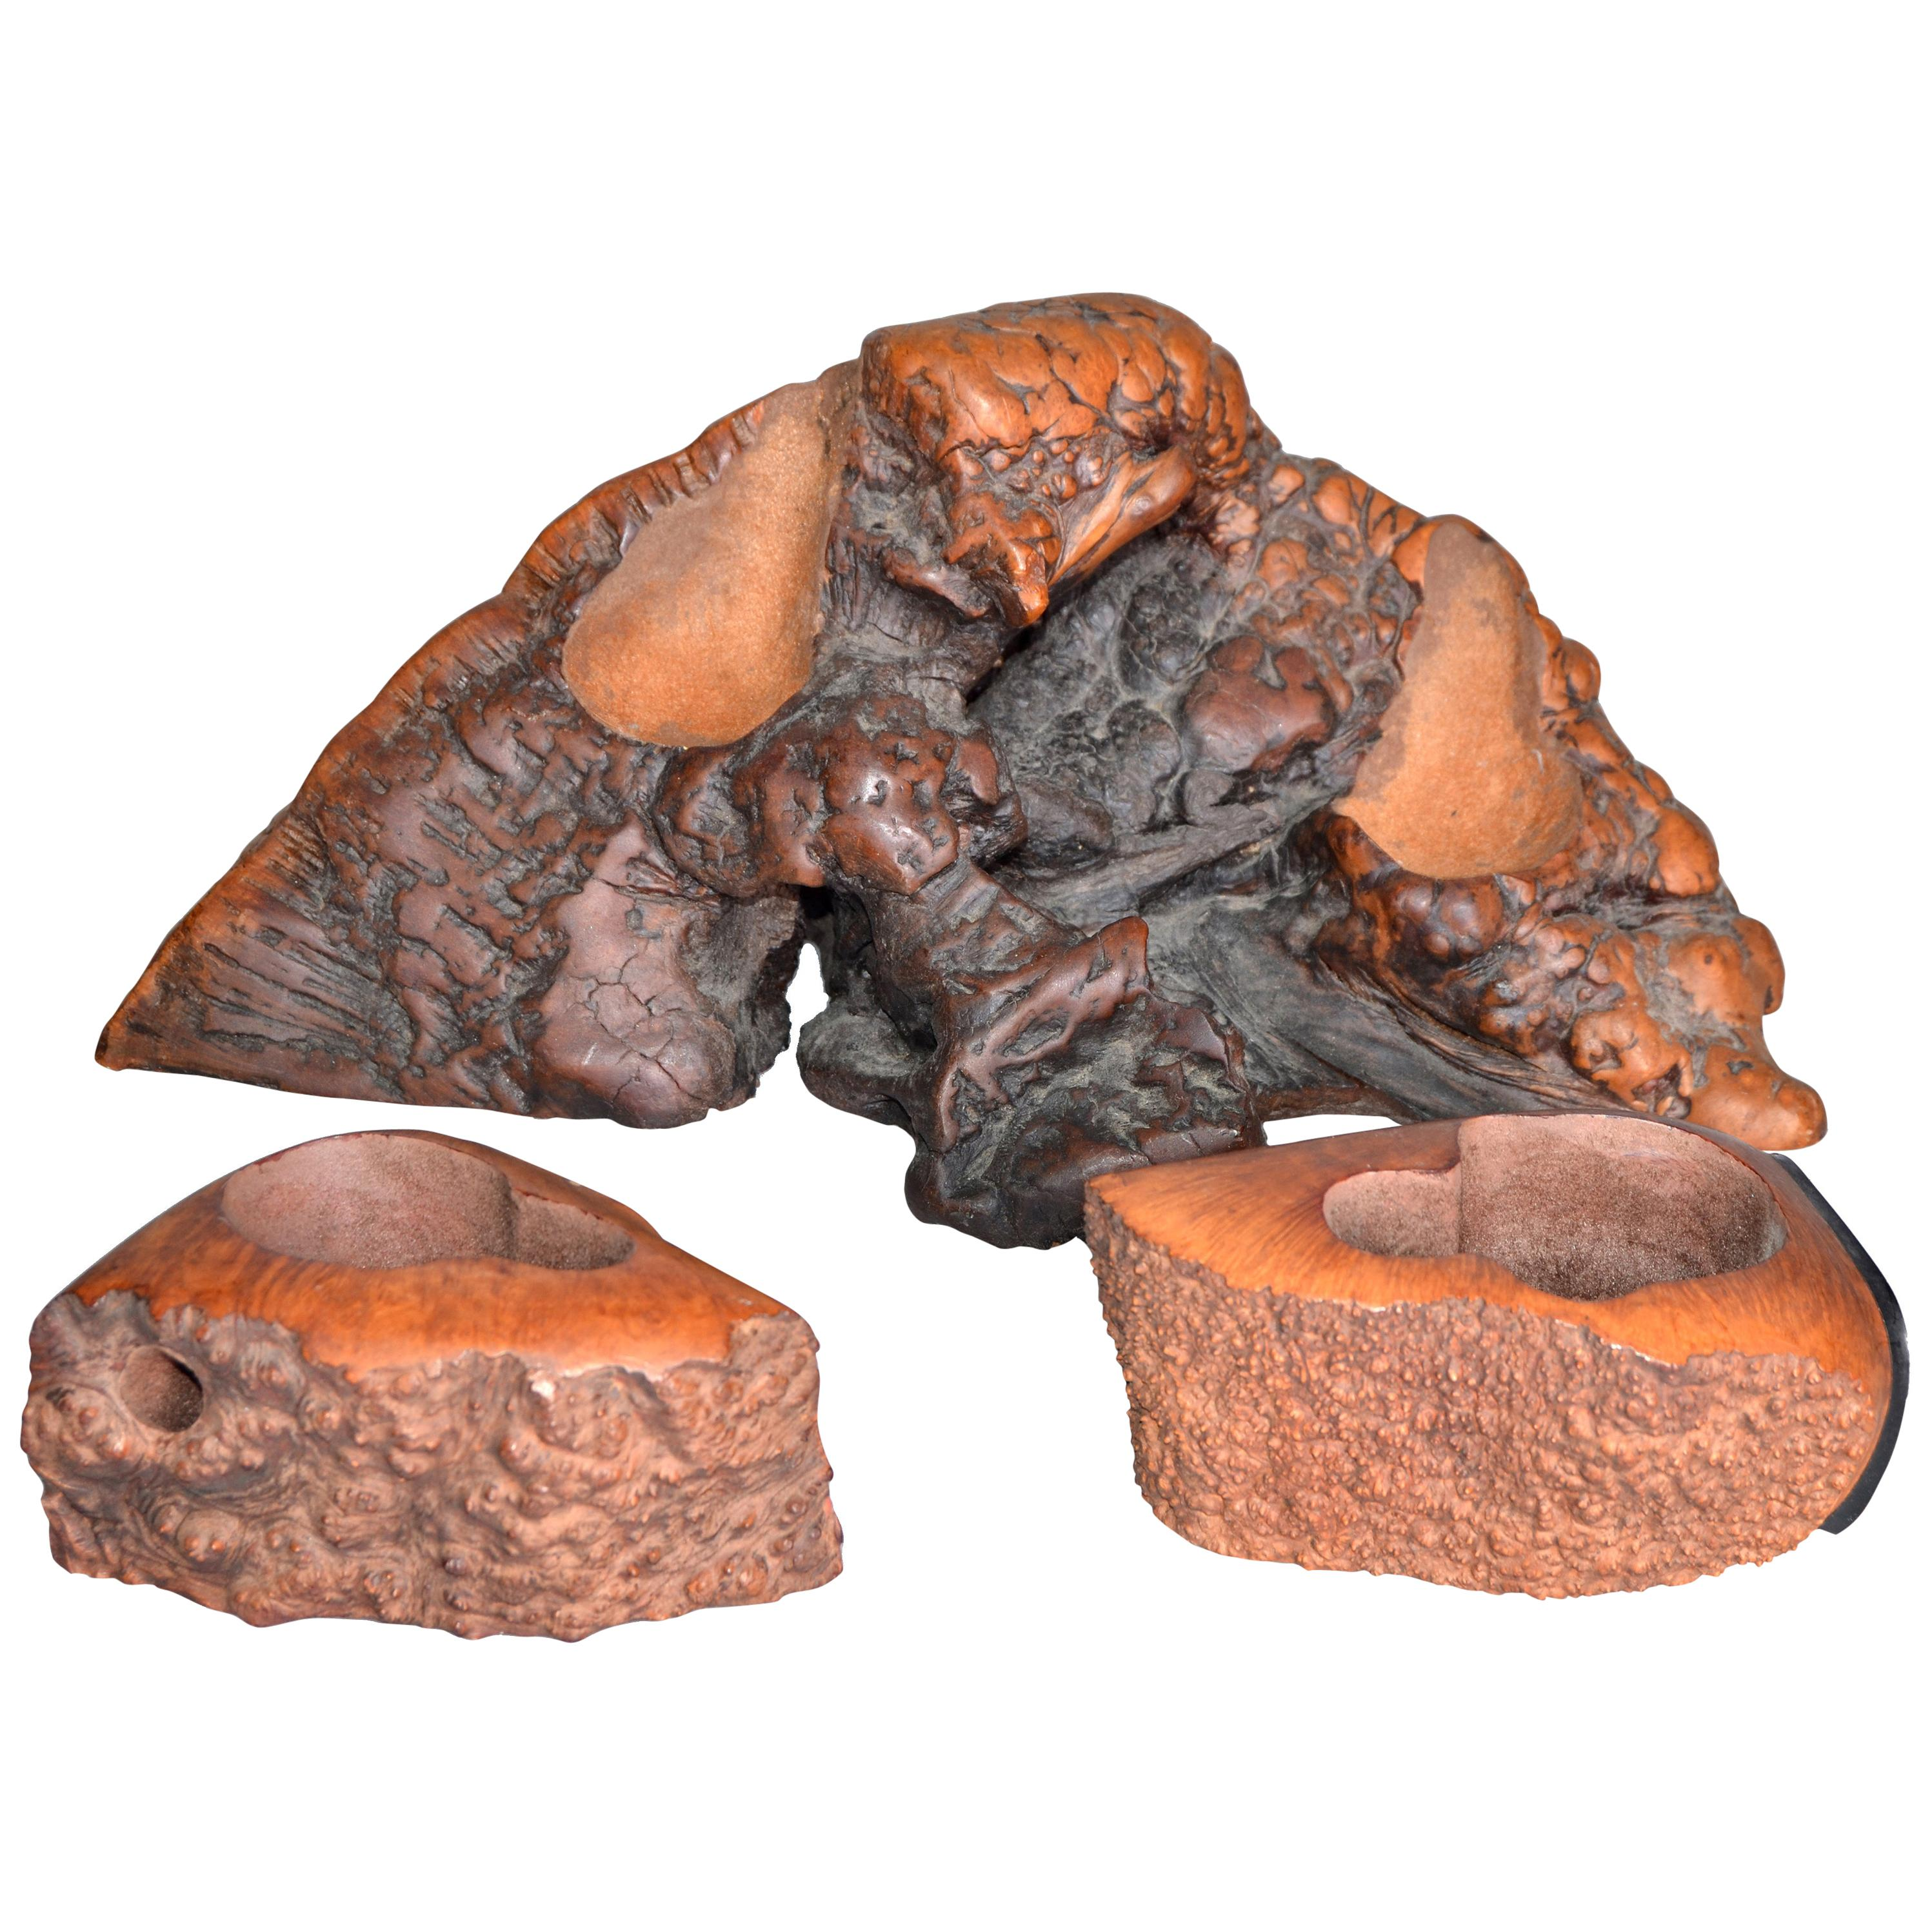 American Rustic Country Style Hand Carved Burl Wood Pipe Holders, Set of 3